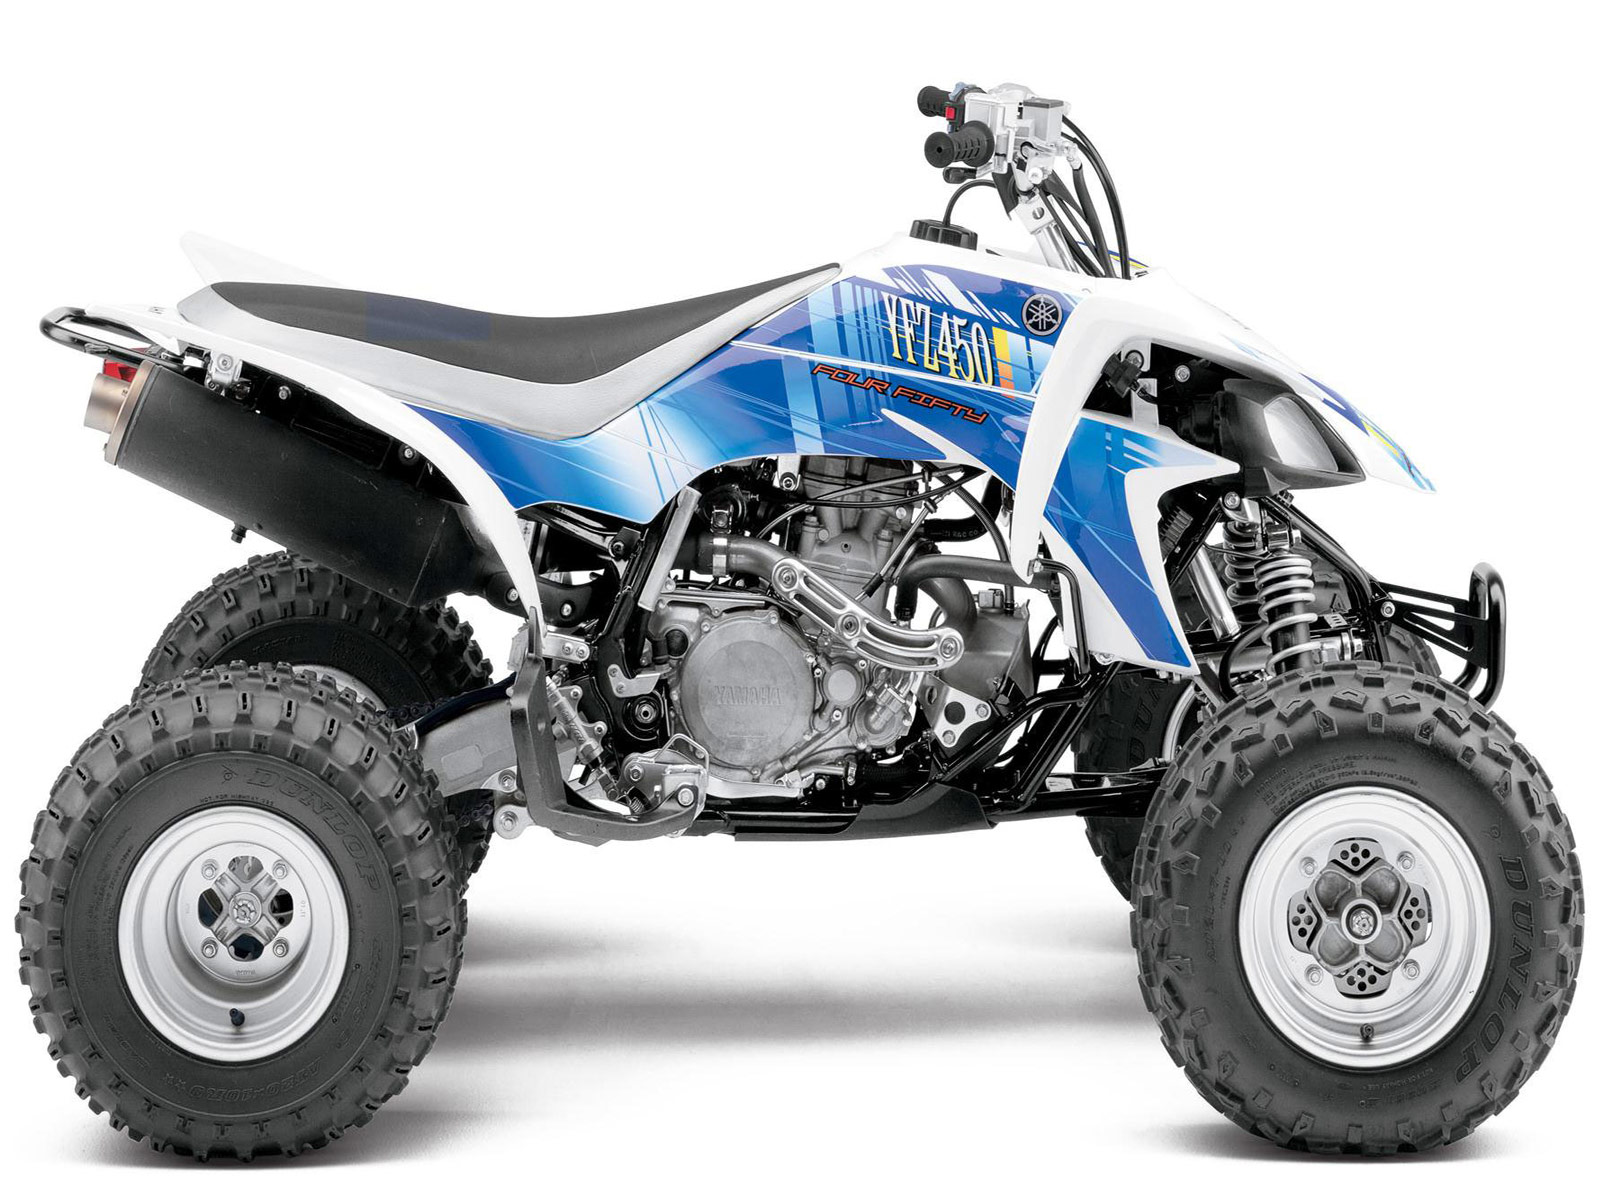 raptor yfz450 2013 yamaha atv pictures specifications